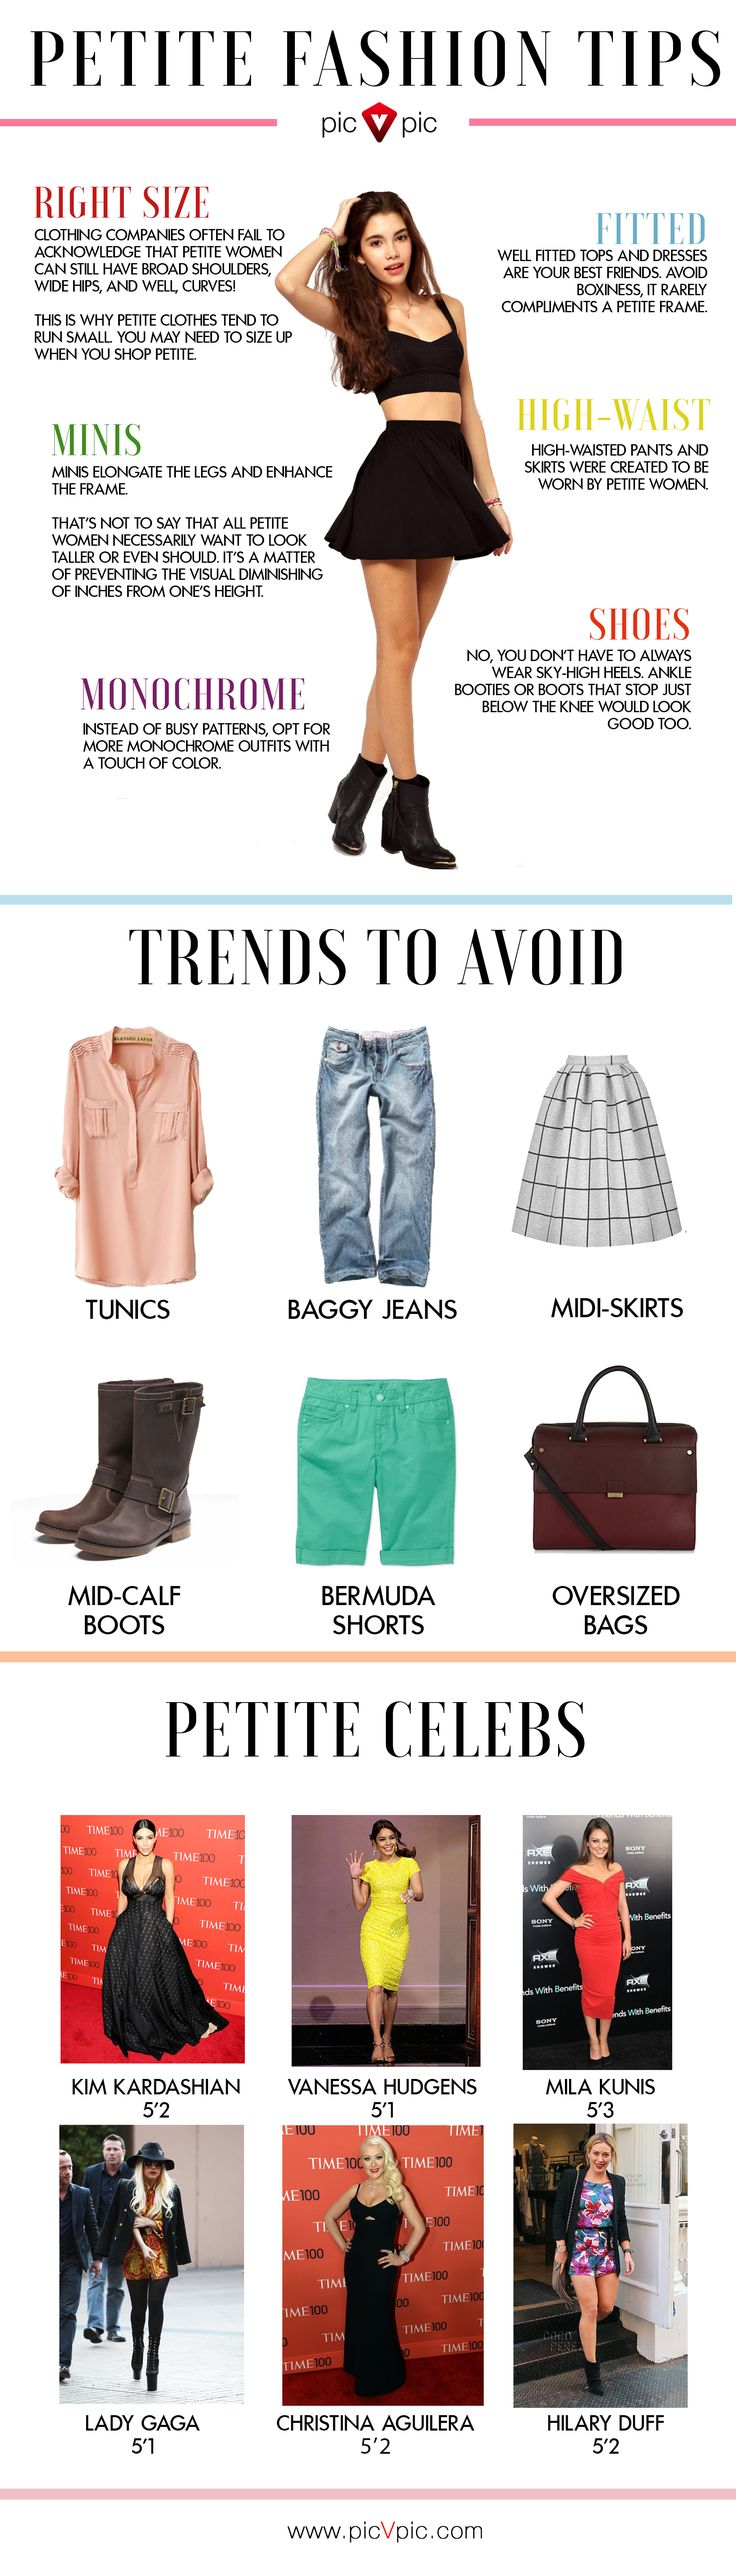 Got some questions about Petite Style? Save this infographic for further reference and leave your concerns behind. Read more about petite style at http://picvpic.com/fashion101/2015/sizing-up-petite-fashion/